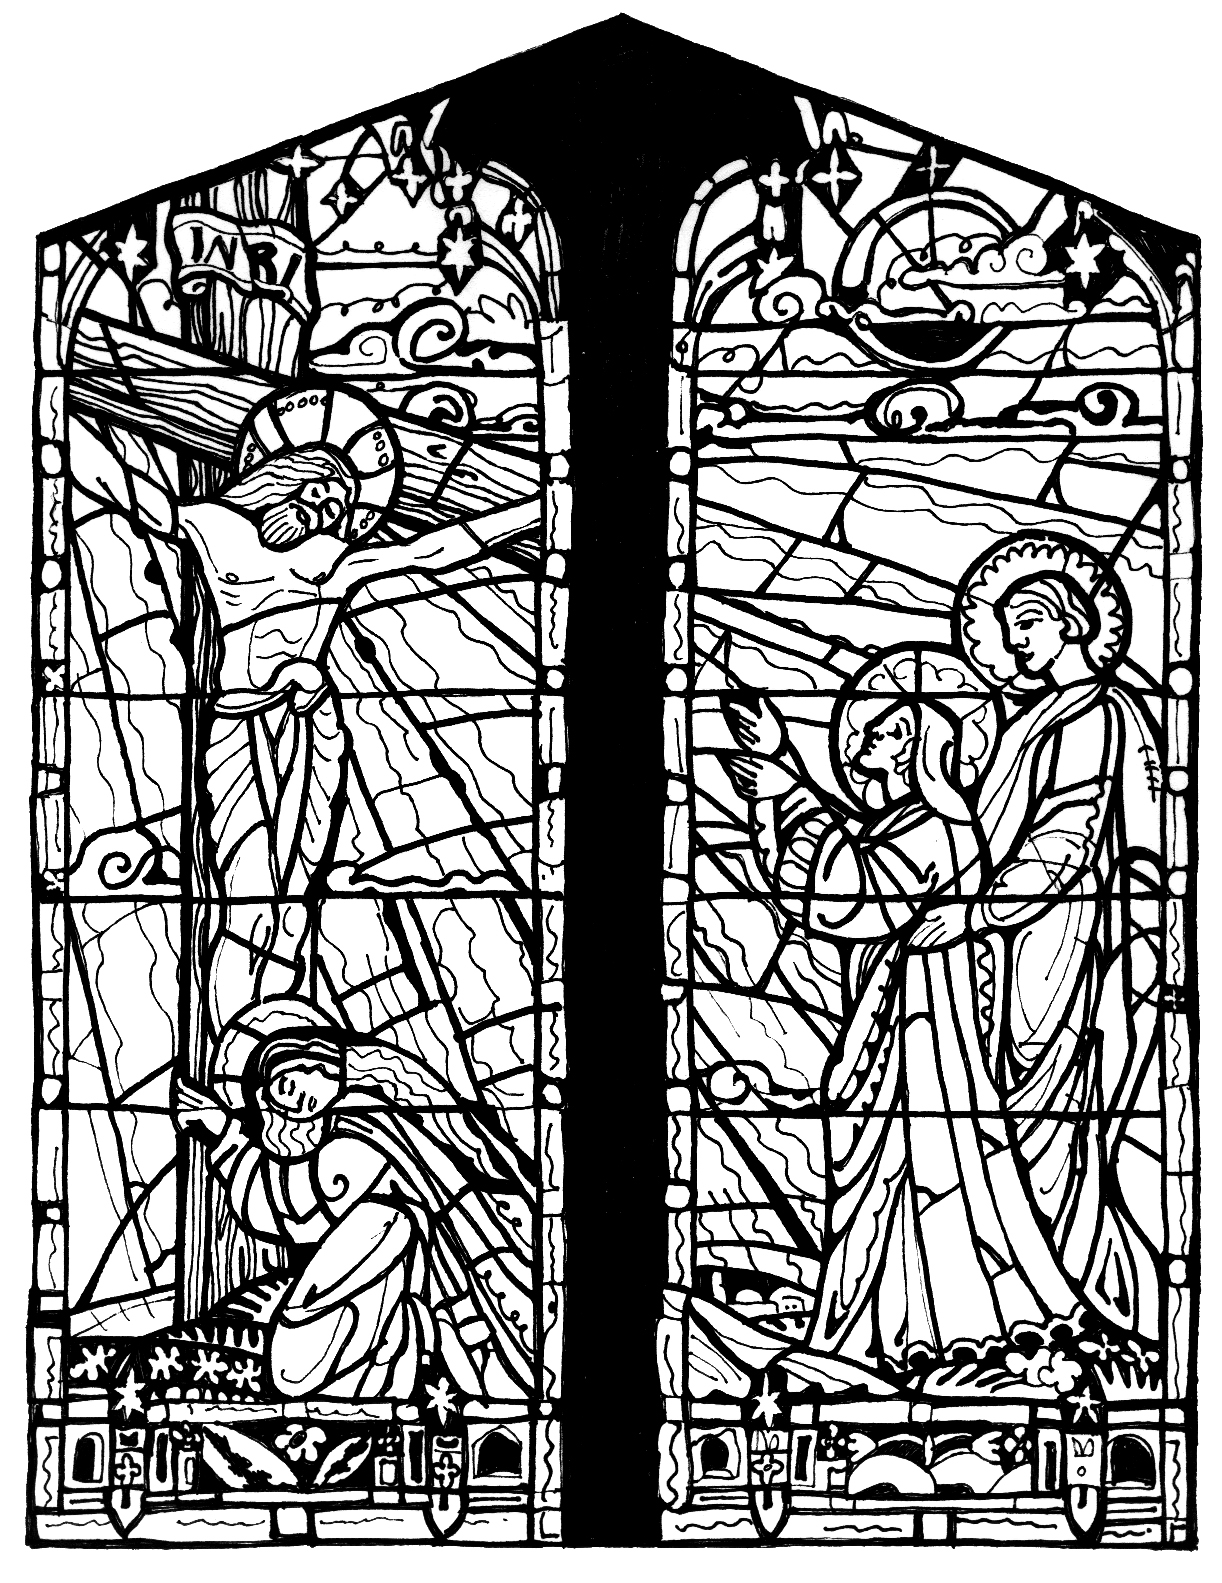 stained glass coloring page stained glass coloring pages for adults best coloring stained page coloring glass 1 1